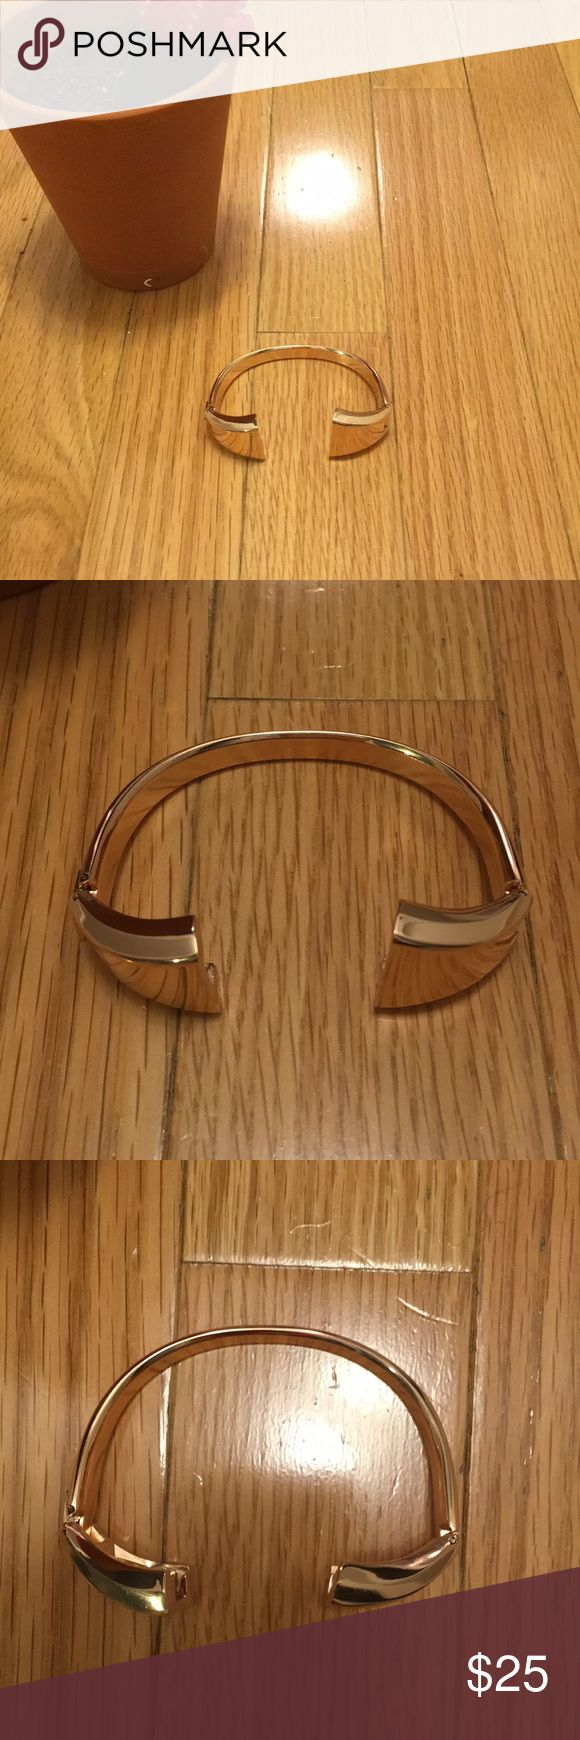 Rose Gold Fitbit Charge 2 Bangle Band Brand new, only tried on. Super cute rose gold Fitbit band which provides a bit of class to a fitness accessory! Bangle shape and it is classy and sturdy. I would recommend for someone with larger wrists. My wrists are super small and it's too big on me. Jewelry Bracelets